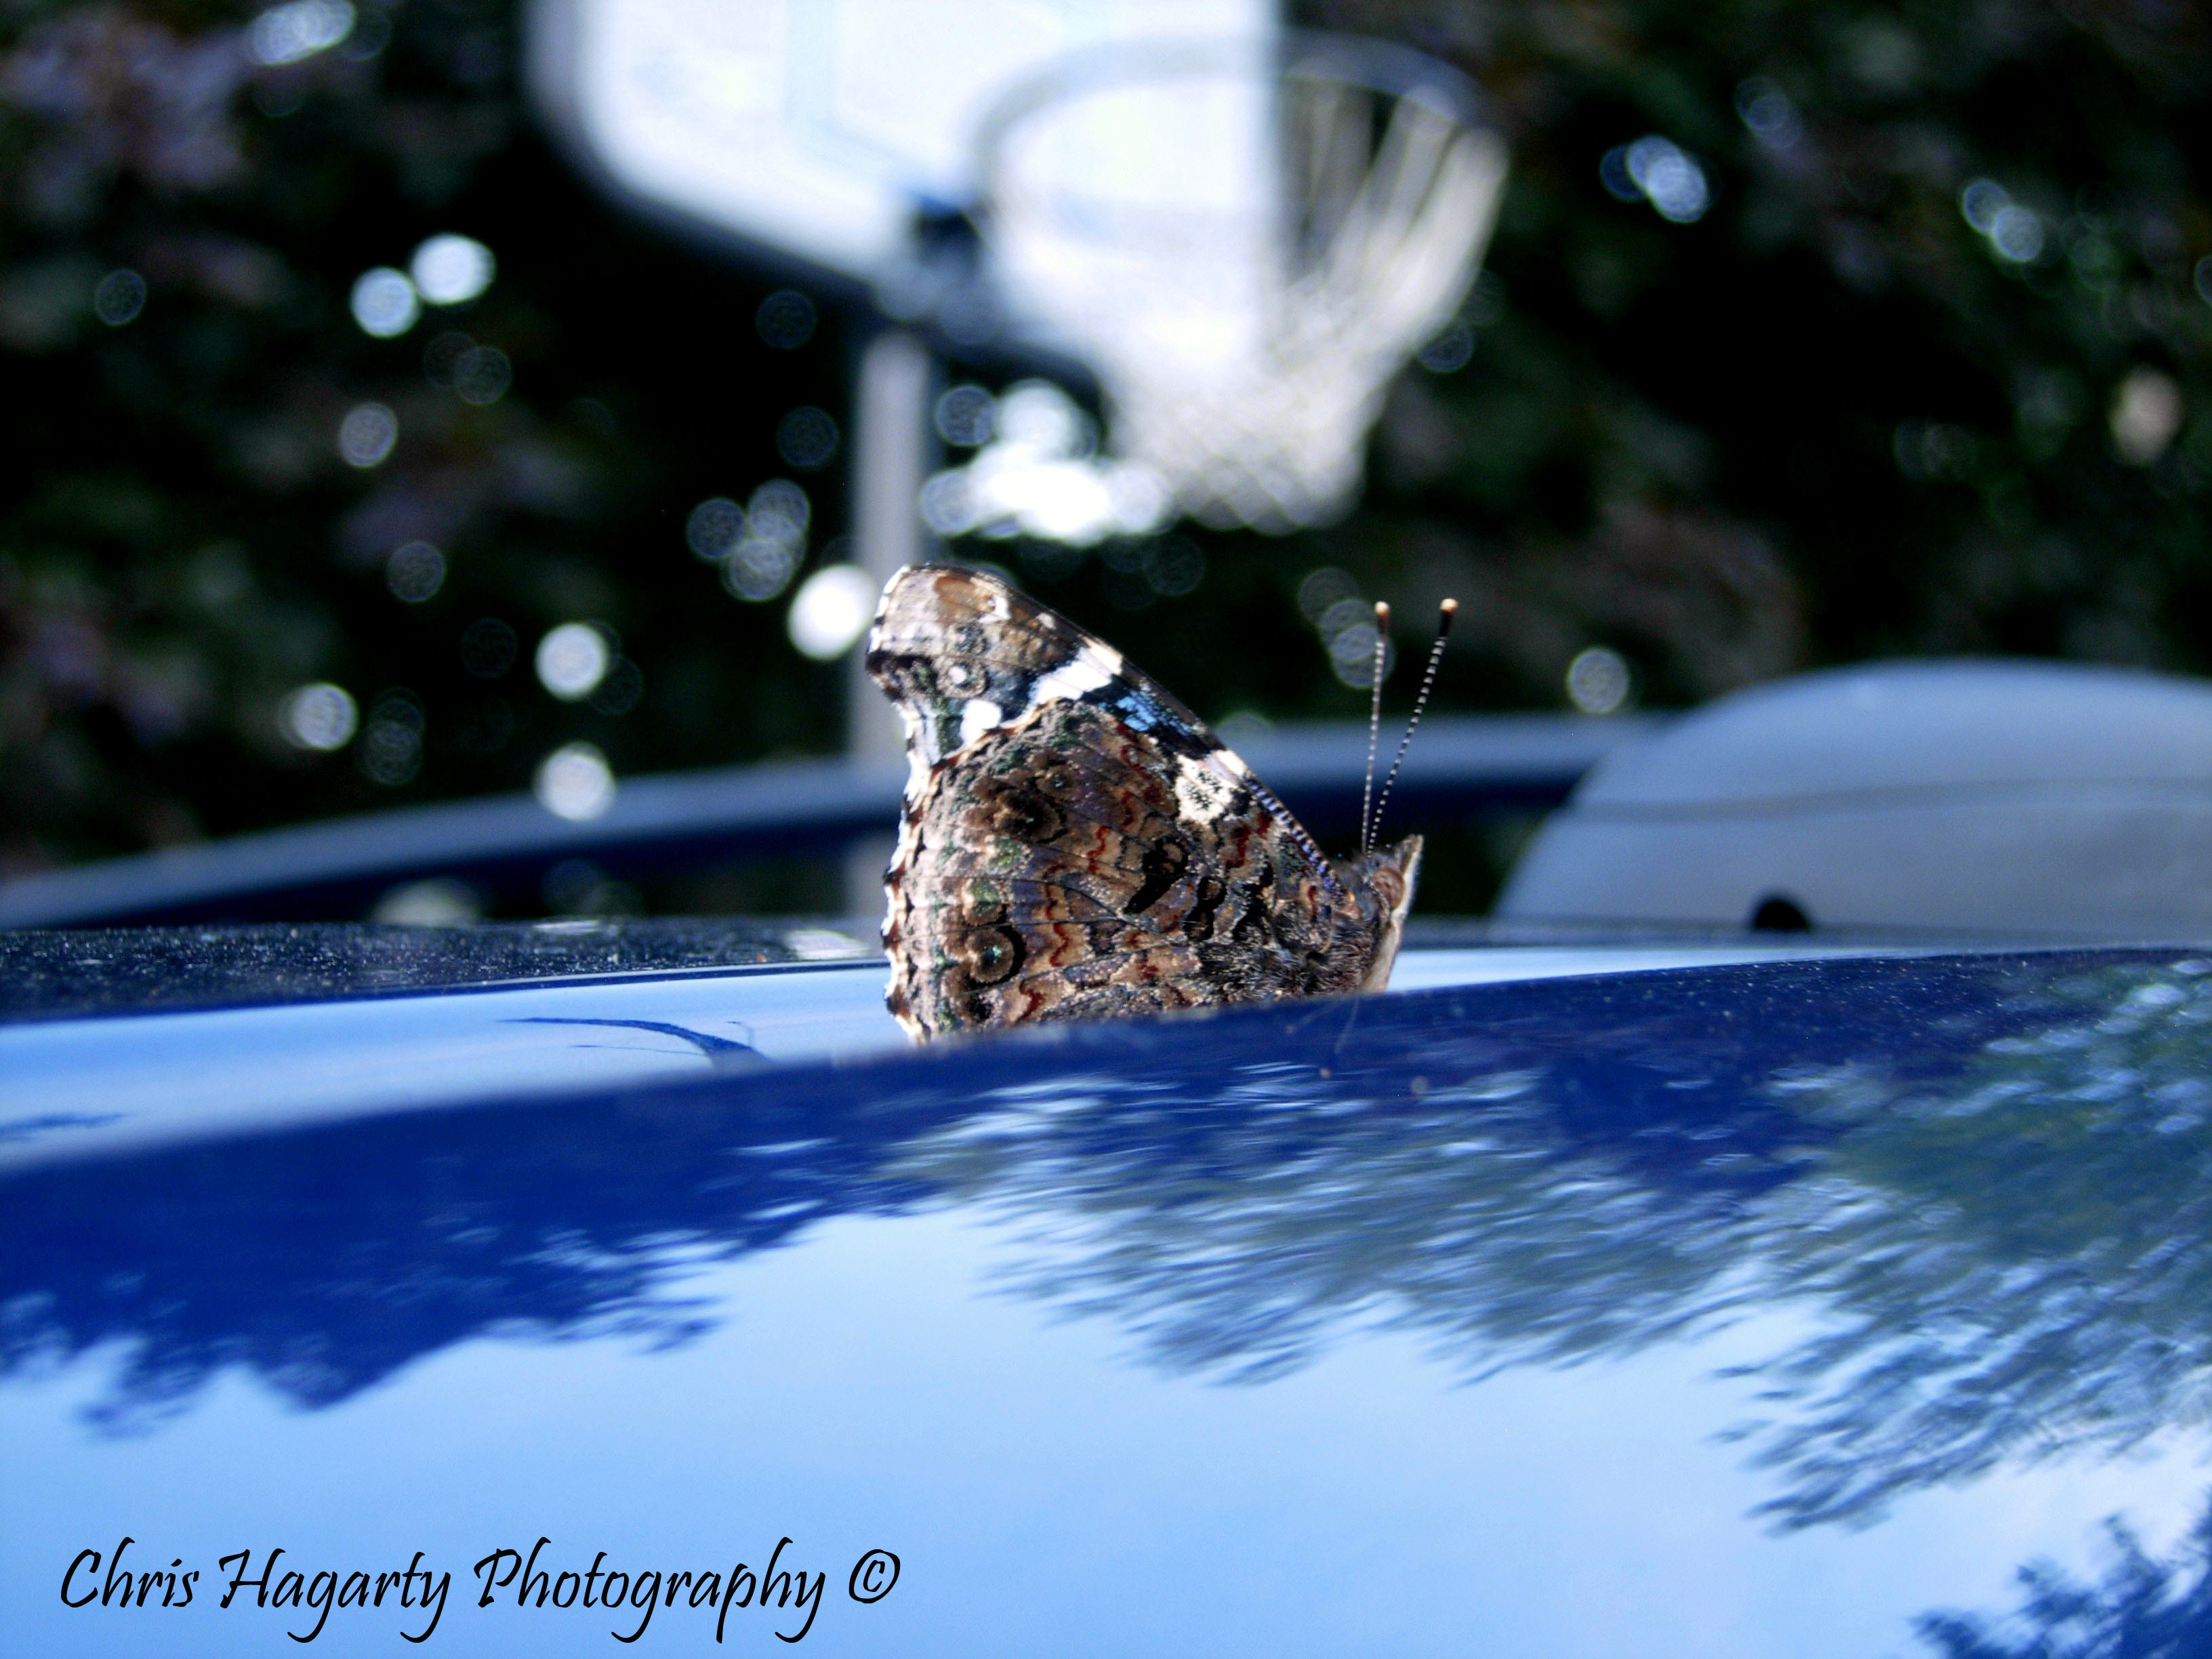 Butterfly on car